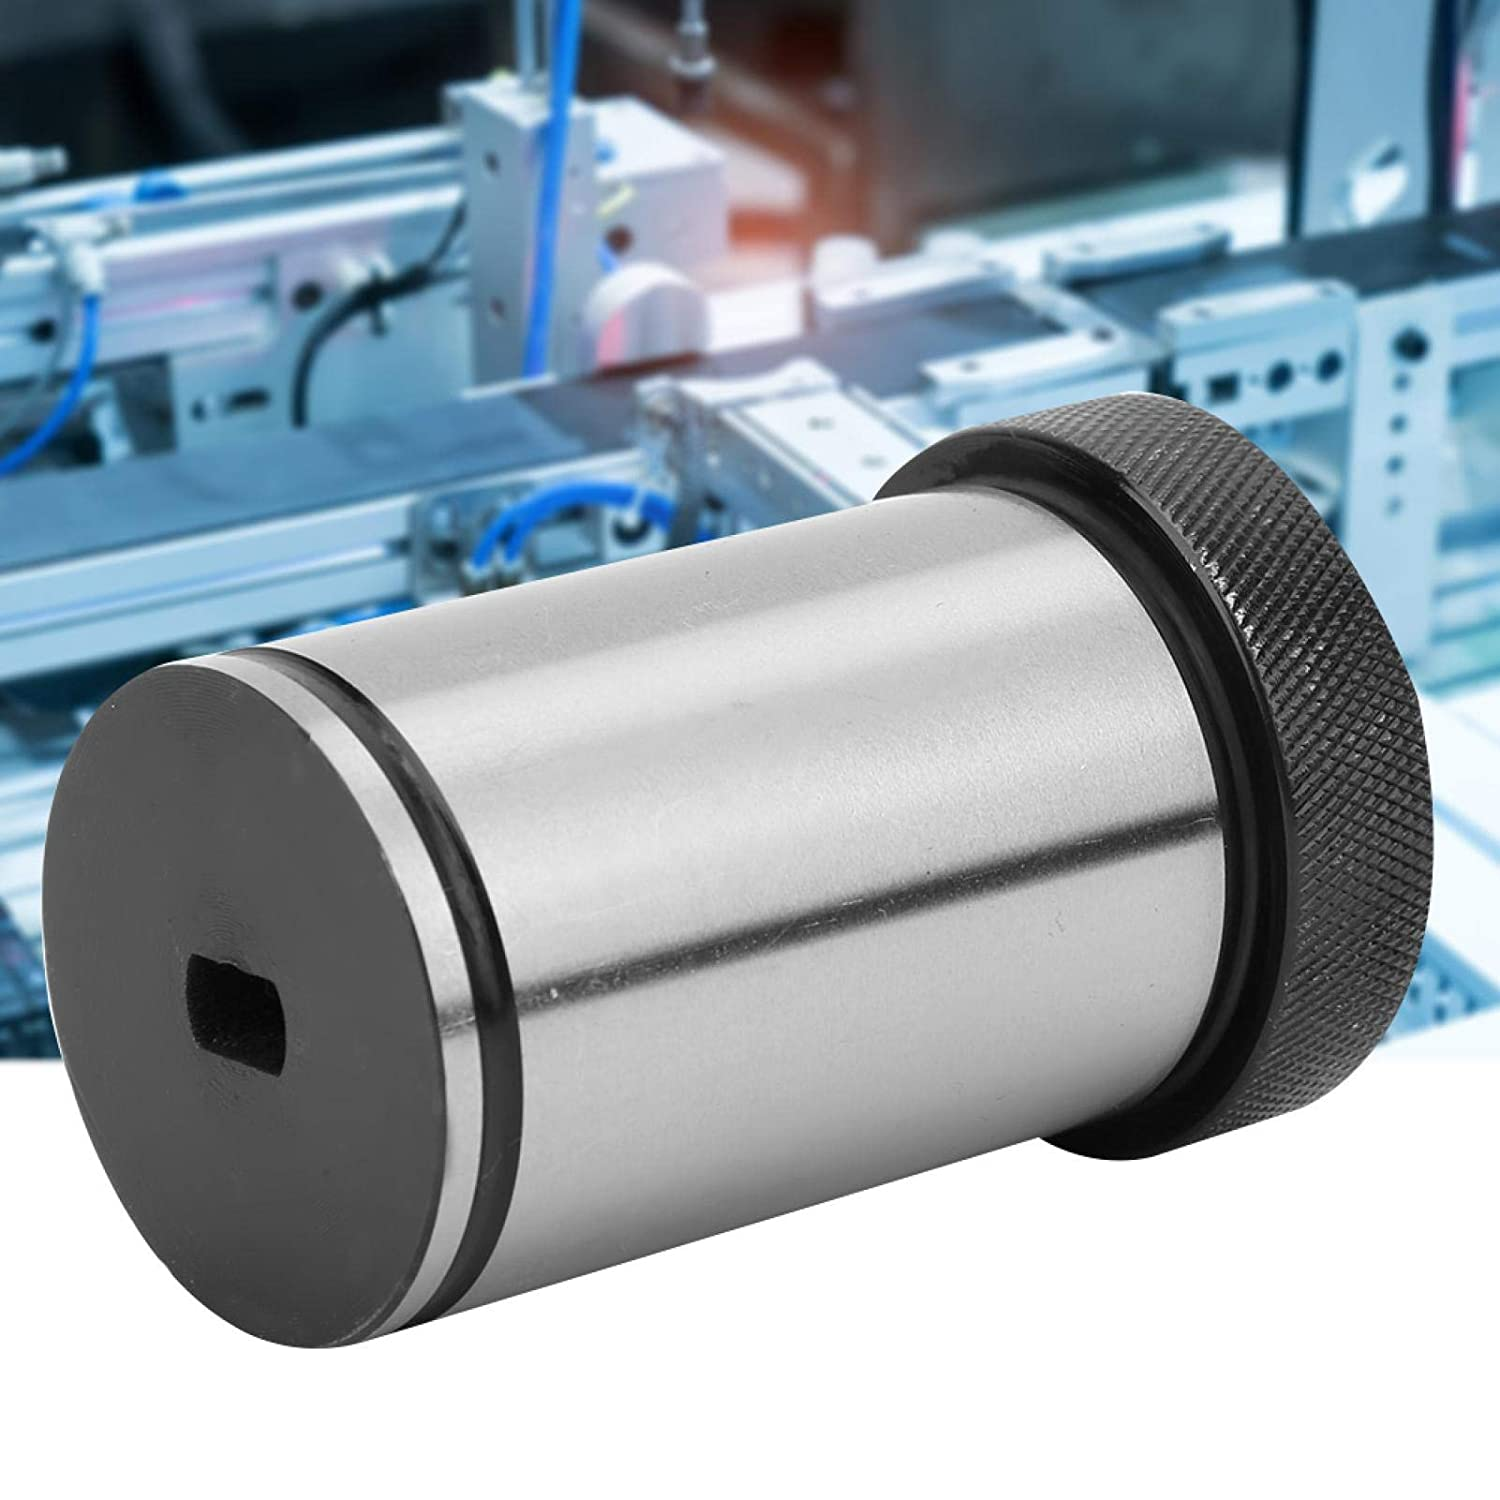 Lathe Parts Accurate High Strength for Automatic Centering Steel 40Cr High Hardness Sbha25-40 Tool Holder Bushing D40-MT1 CNC Lathe Bushing